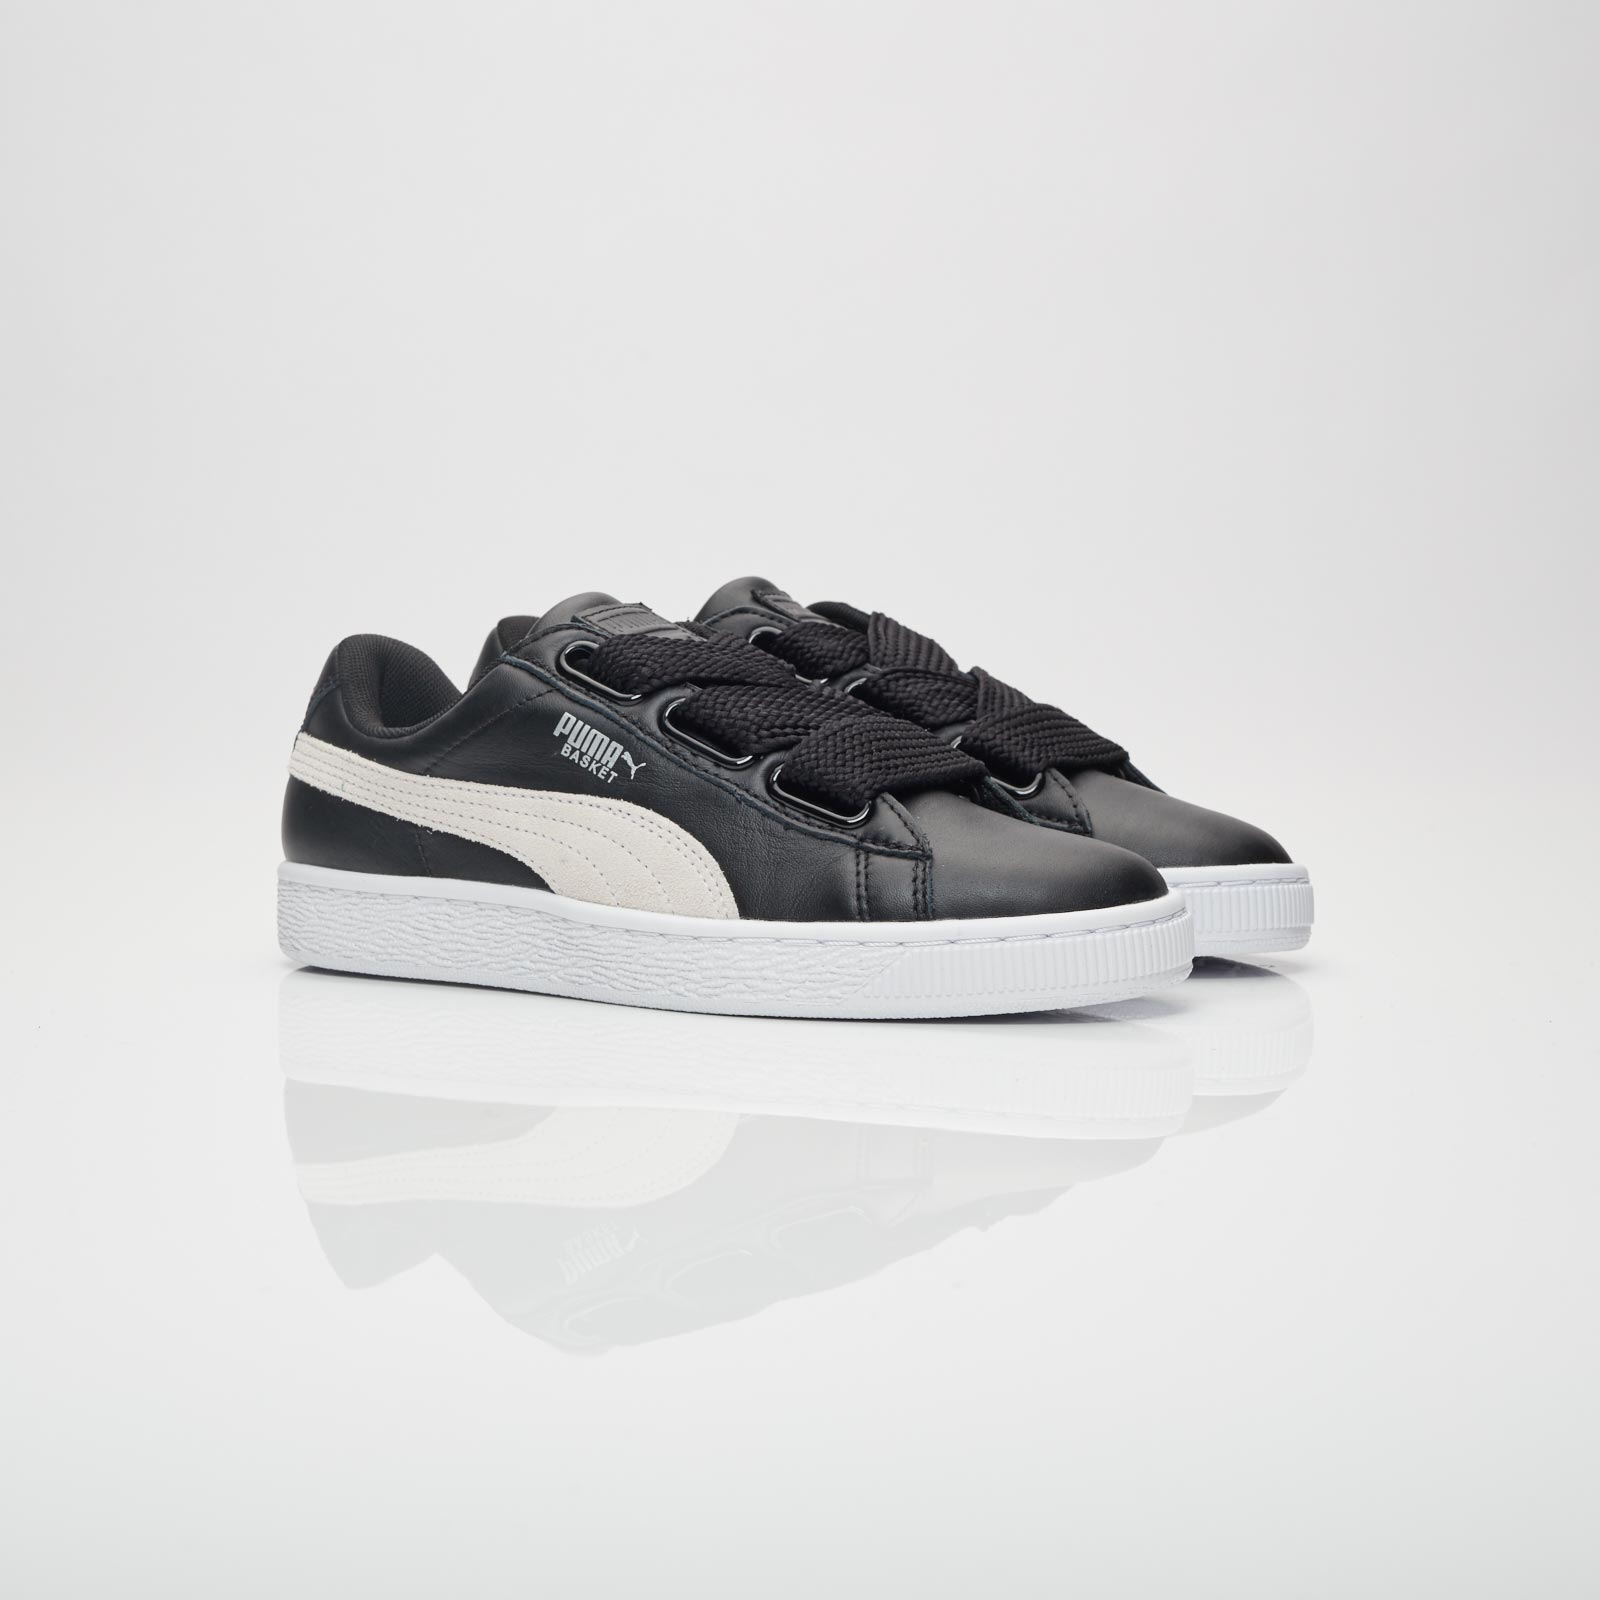 differently c35ef a7757 Puma Basket Heart DE Wmns - 364082-01 - Sneakersnstuff ...